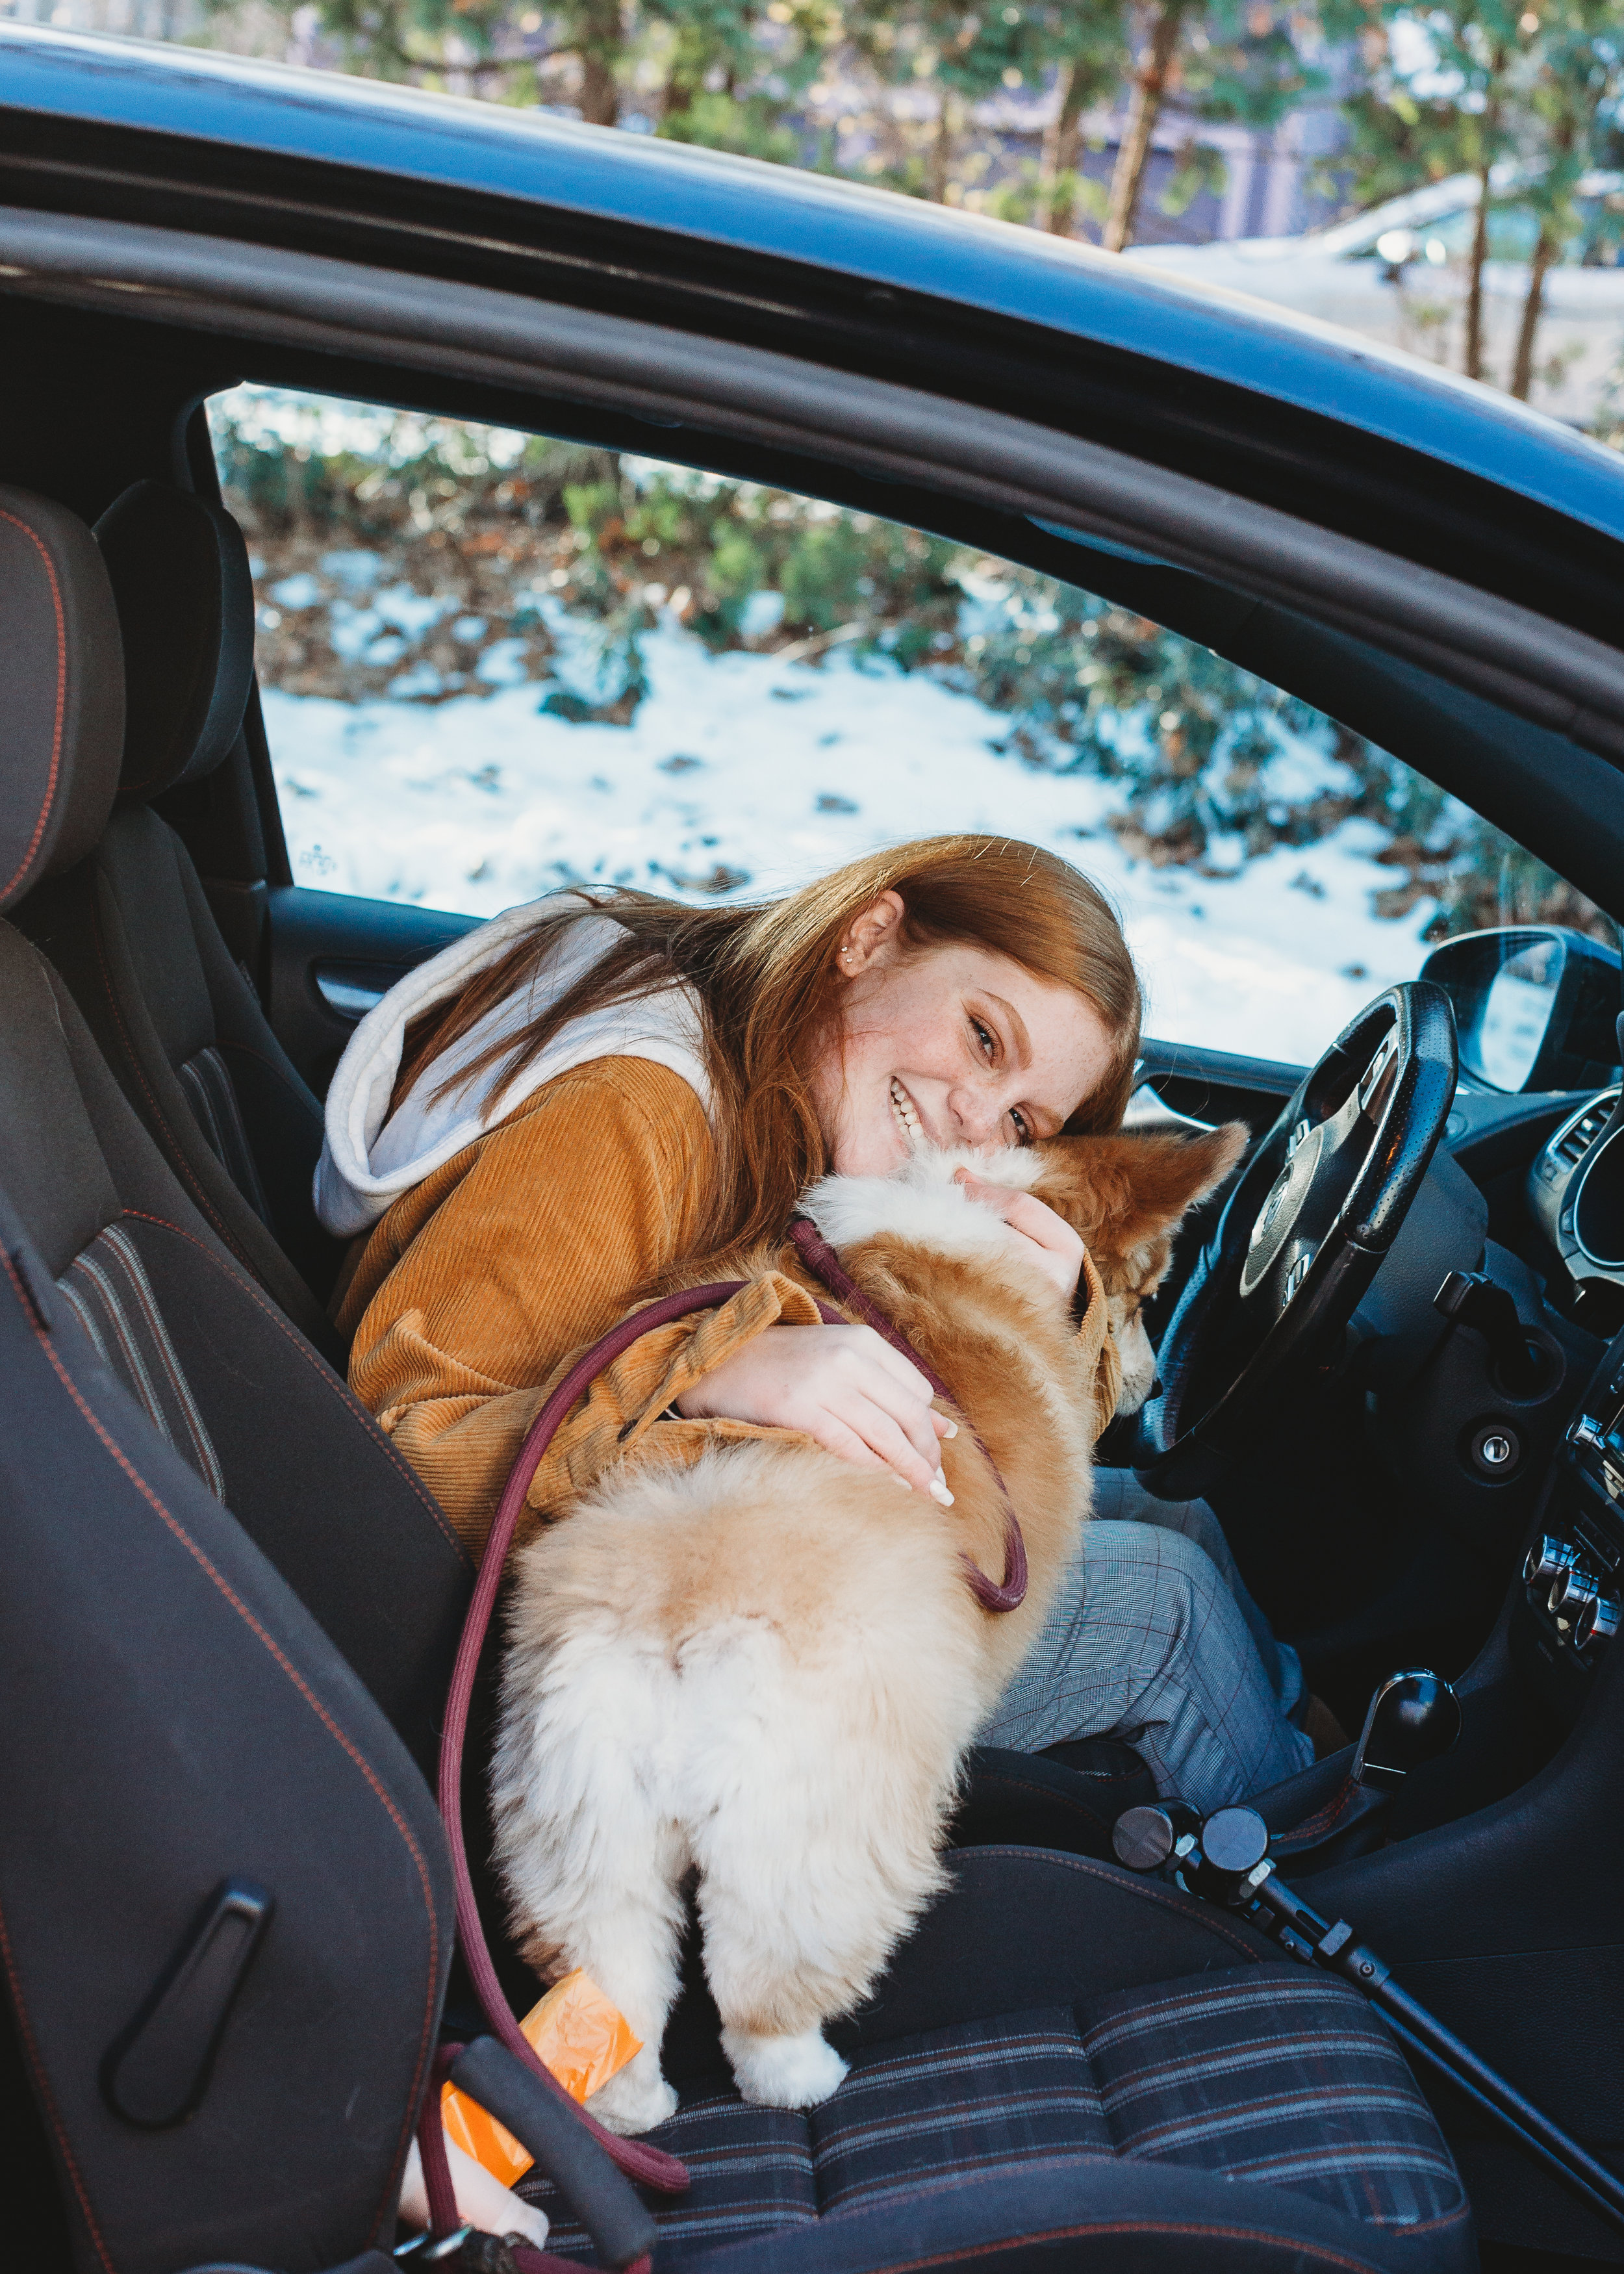 Our niece hugs our dog in her new car. Boston family photographer / lifestyle photography